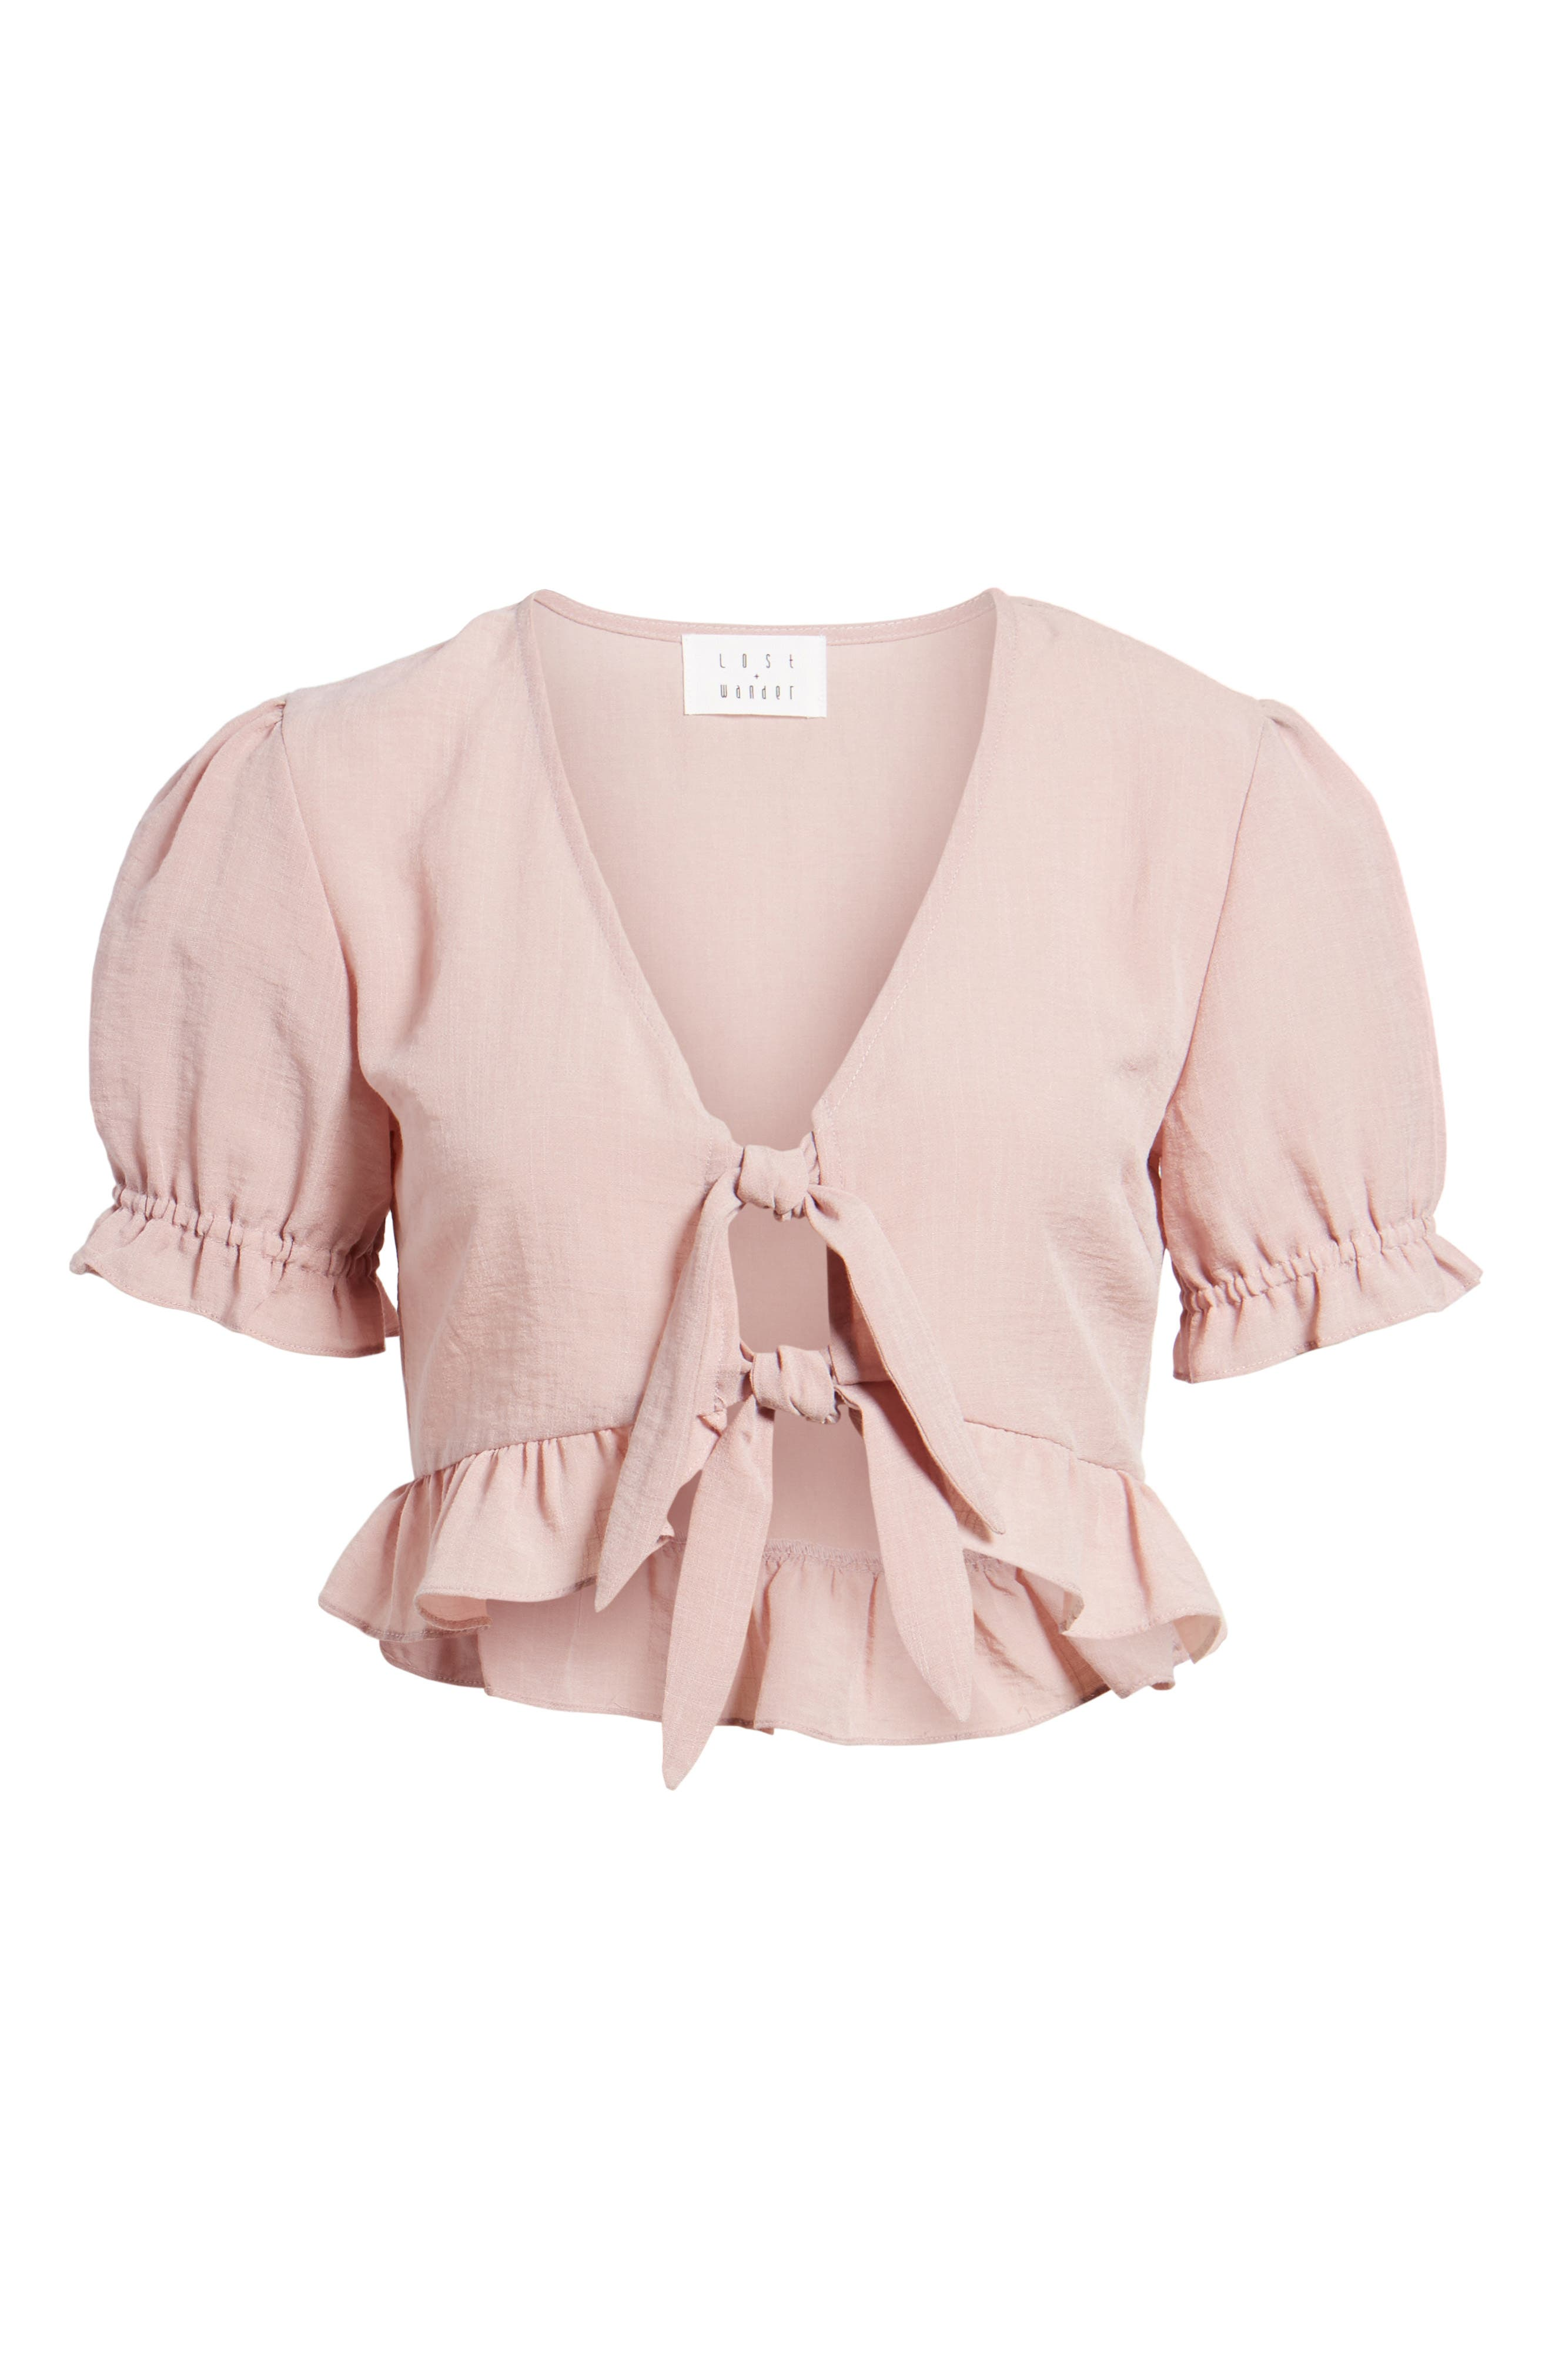 LOST + WANDER, Peony Ruffle Tie Front Crop Top, Alternate thumbnail 6, color, 681